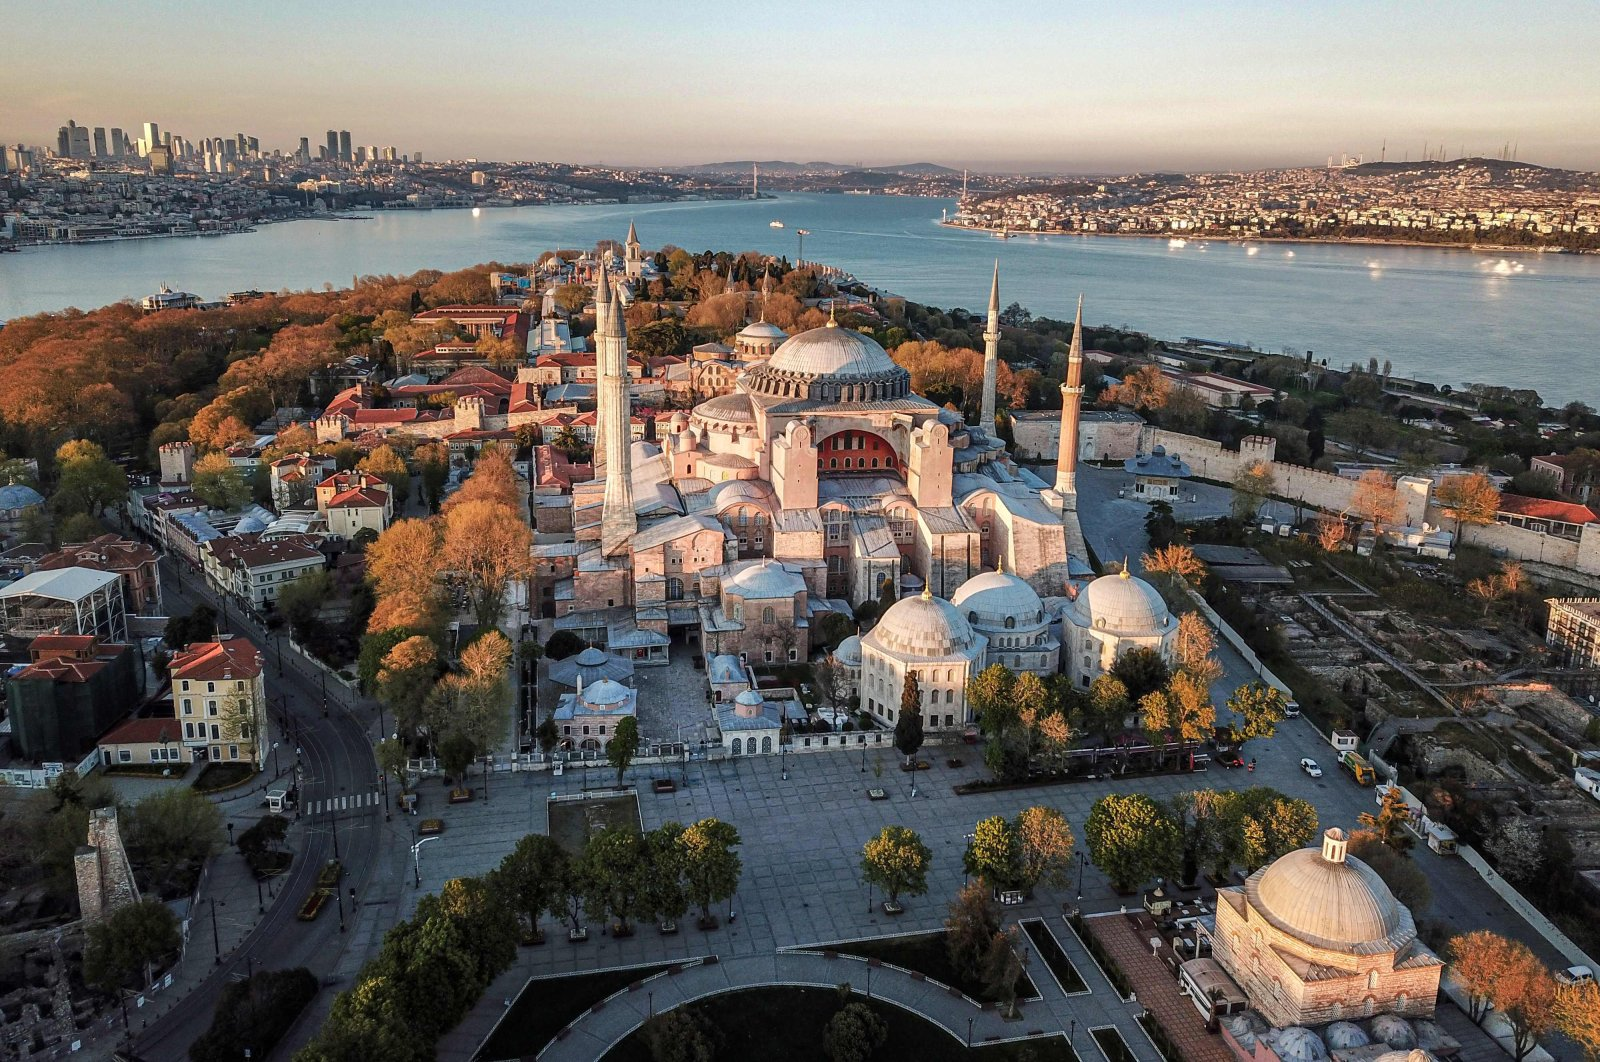 This aerial picture taken on April 25, 2020 shows the Hagia Sophia museum in Istanbul. (AFP Photo)